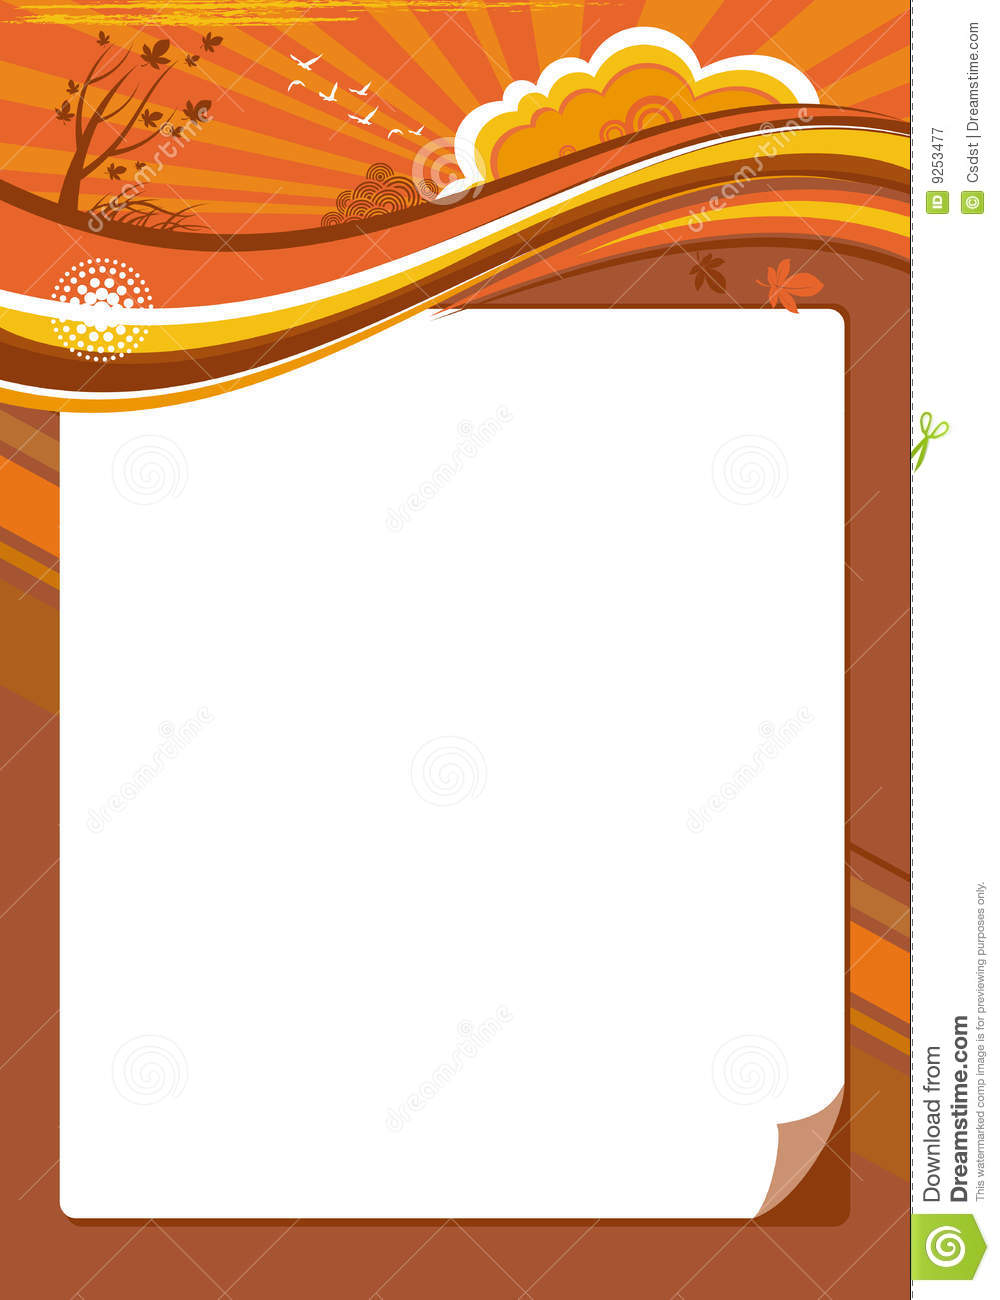 calendar template royalty free stock photography image